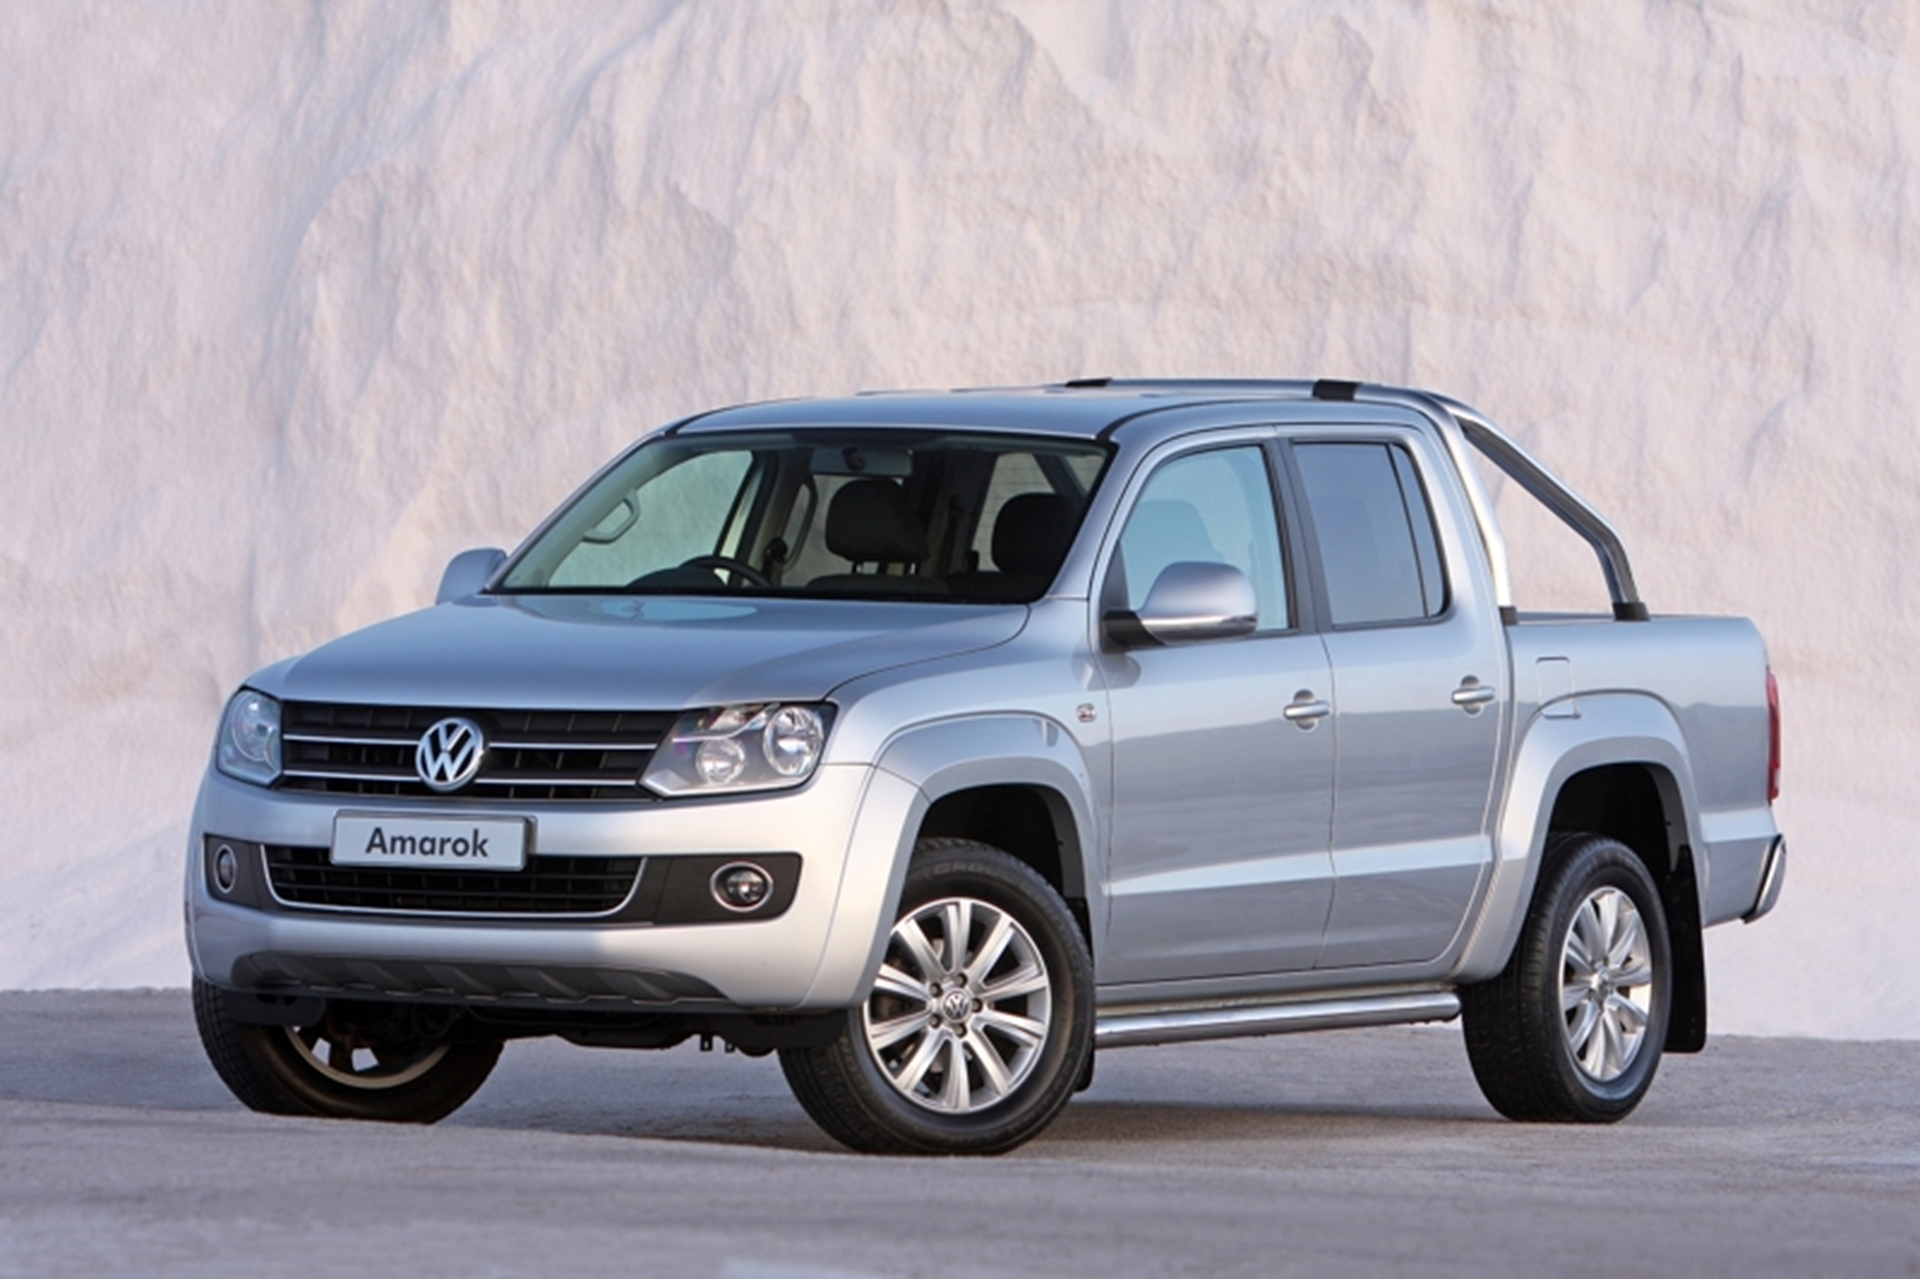 Amarok Double Cab now available with petrol engine